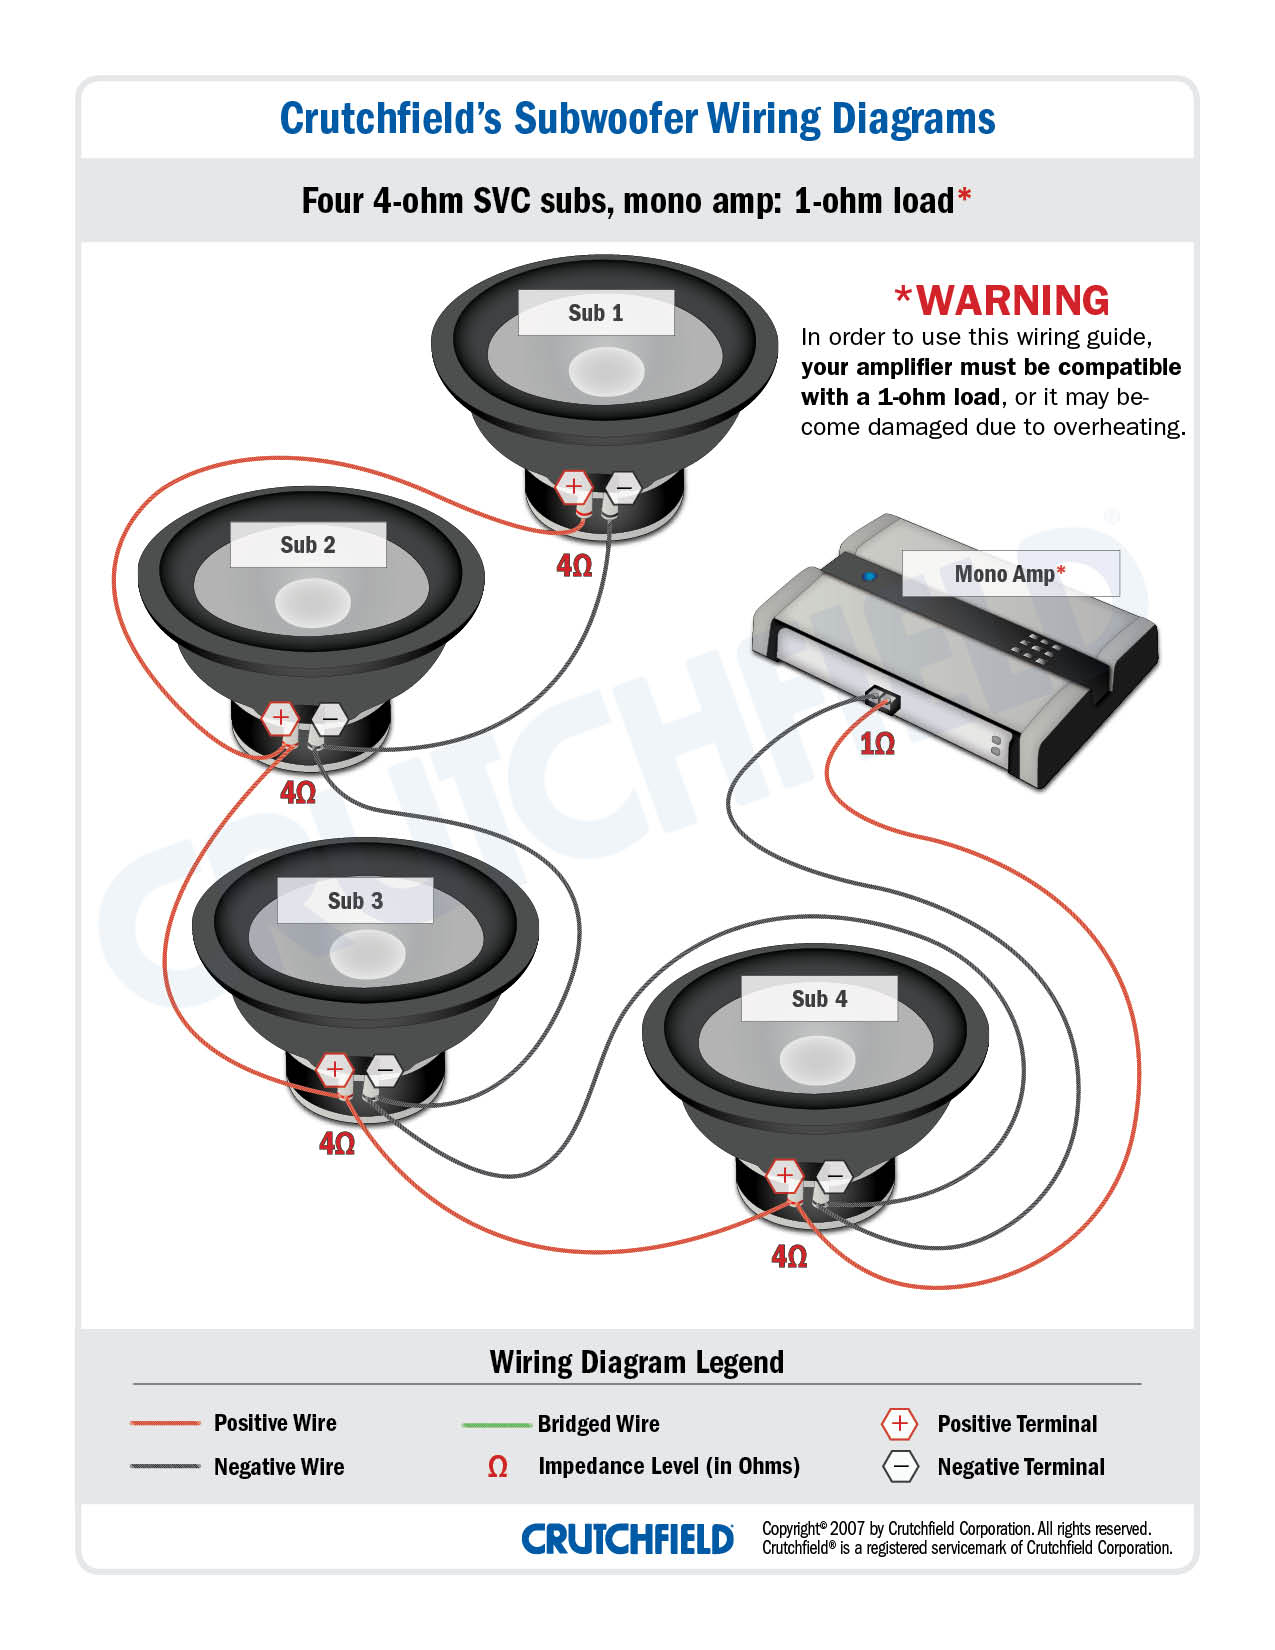 4 SVC 4 ohm mono low imp wiring subwoofers what's all this about ohms? crutchfield wiring diagrams at bayanpartner.co